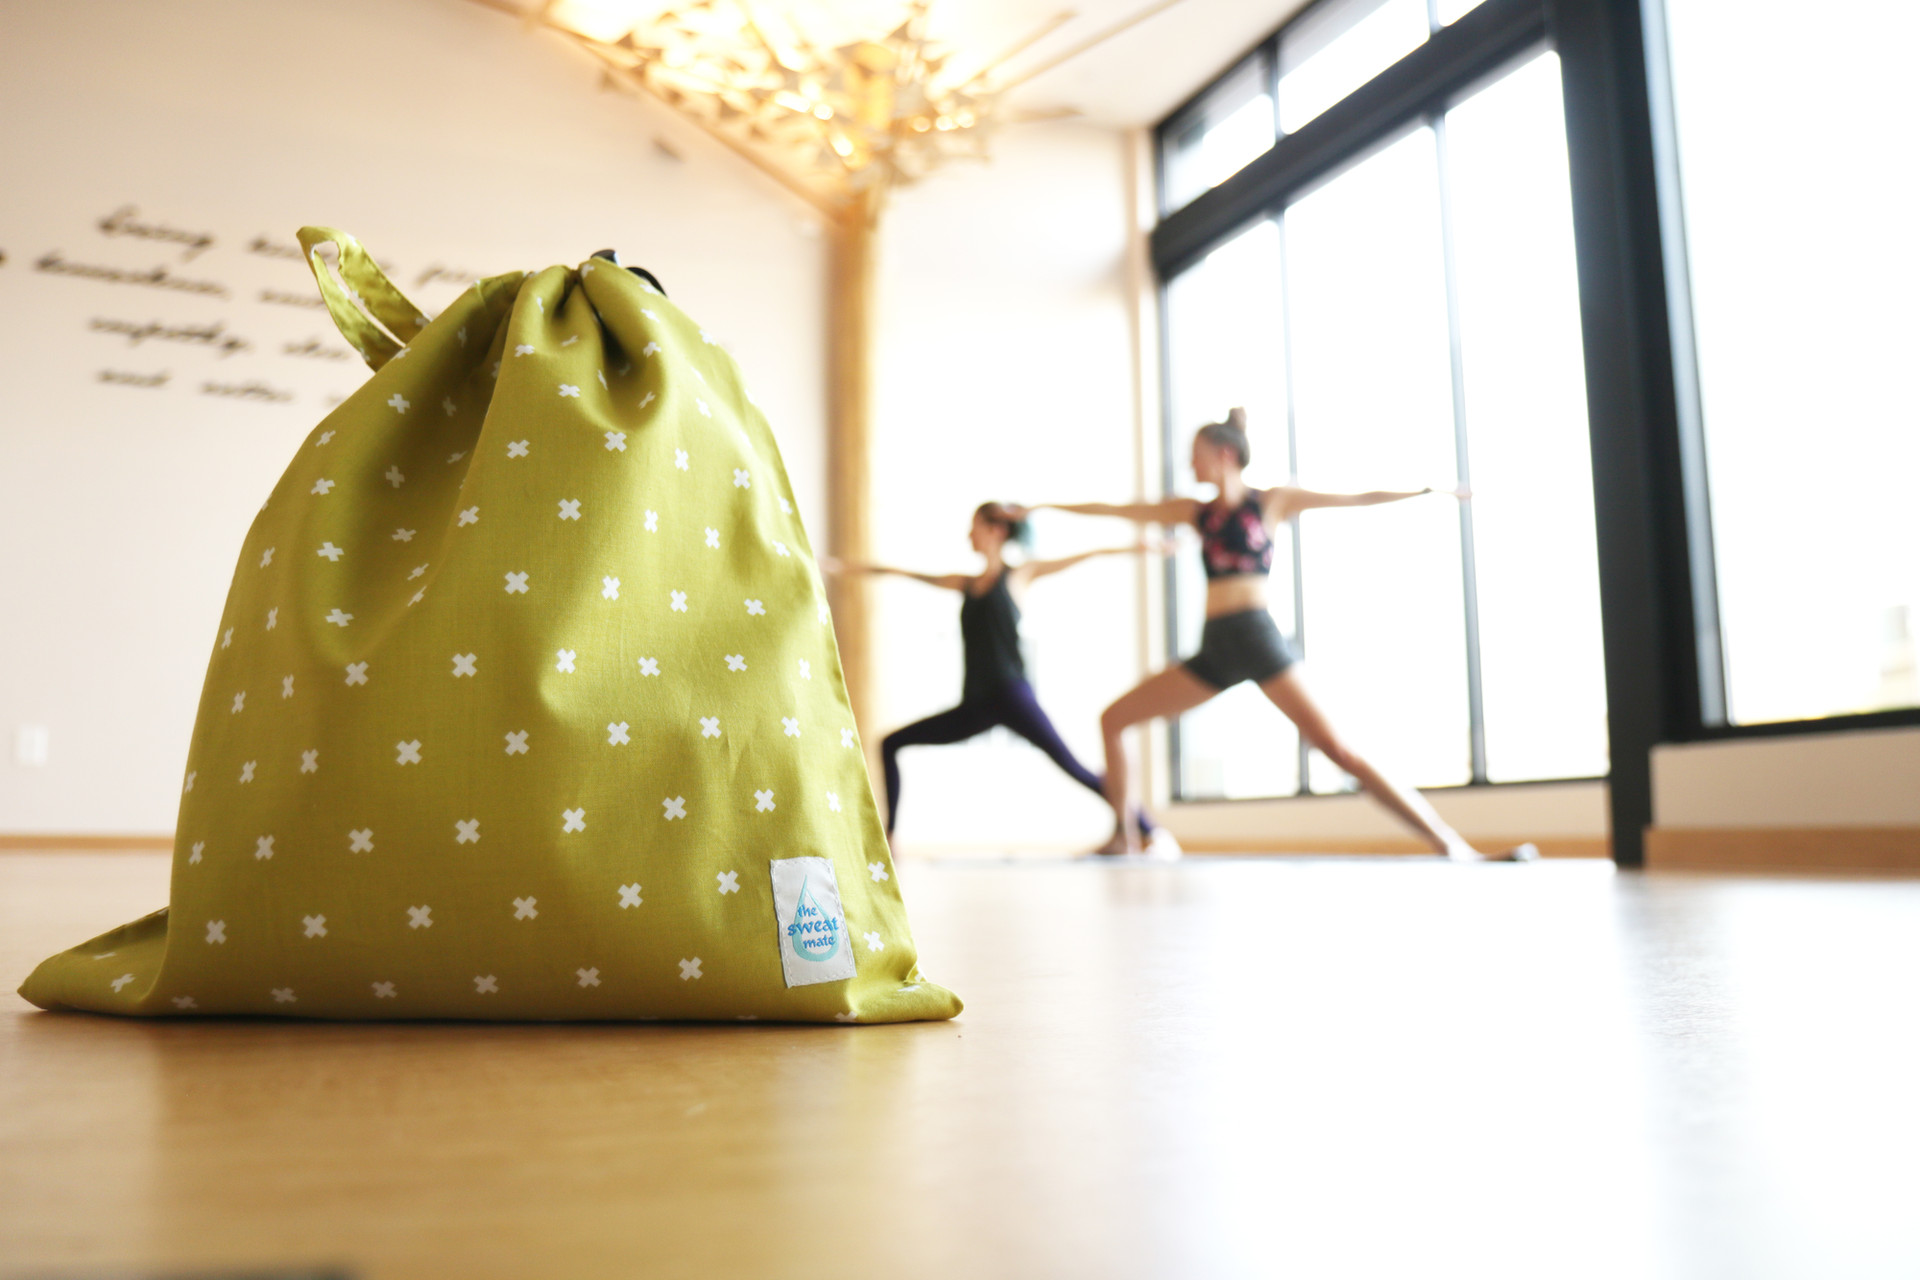 Hot Yoga Bag